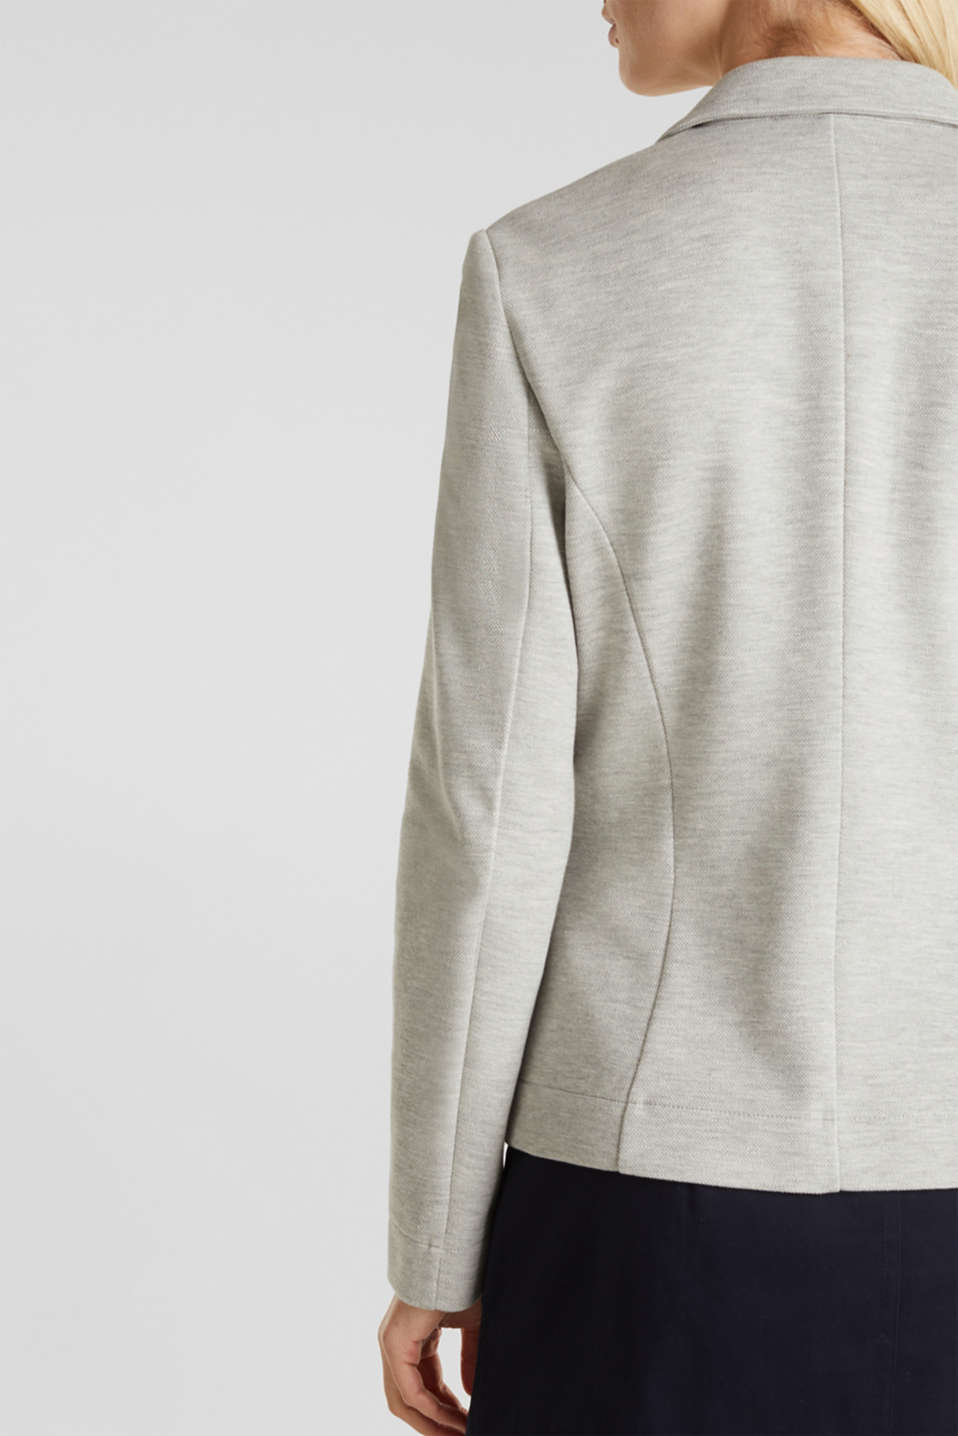 Stretch jersey blazer in piqué fabric, LIGHT GREY 5, detail image number 2